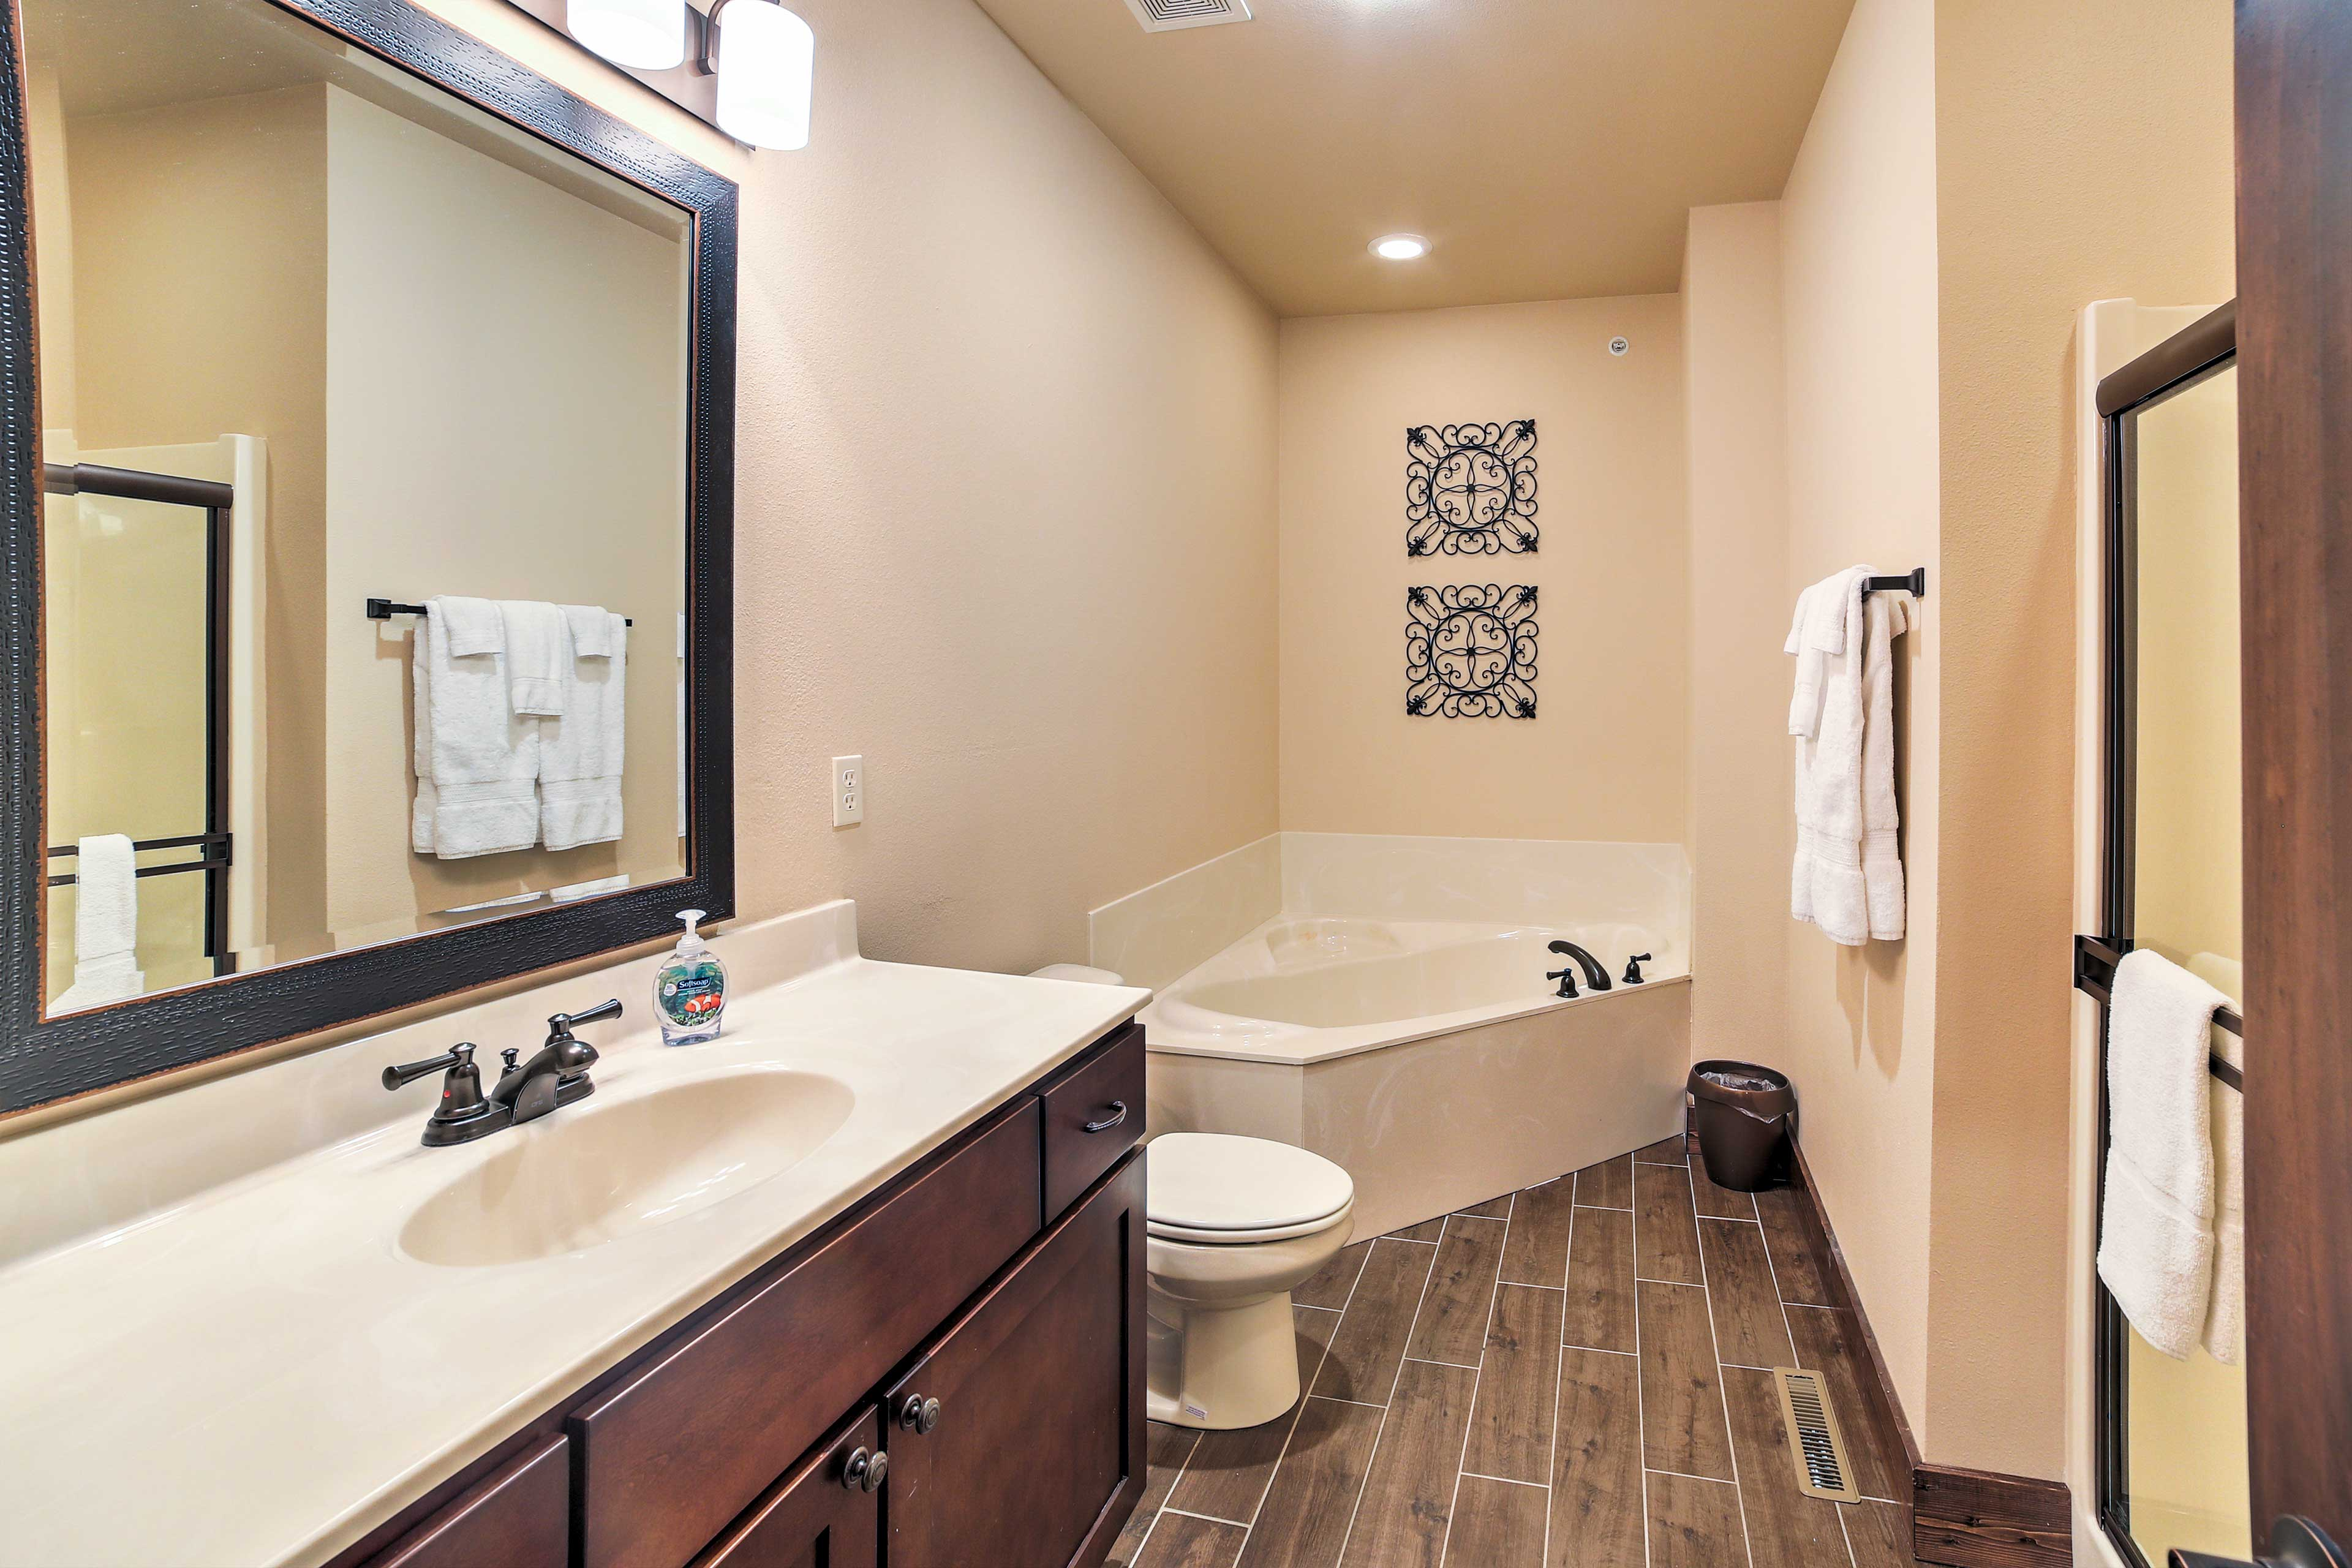 Take a soothing bath in the jetted Jacuzzi in this full bathroom.